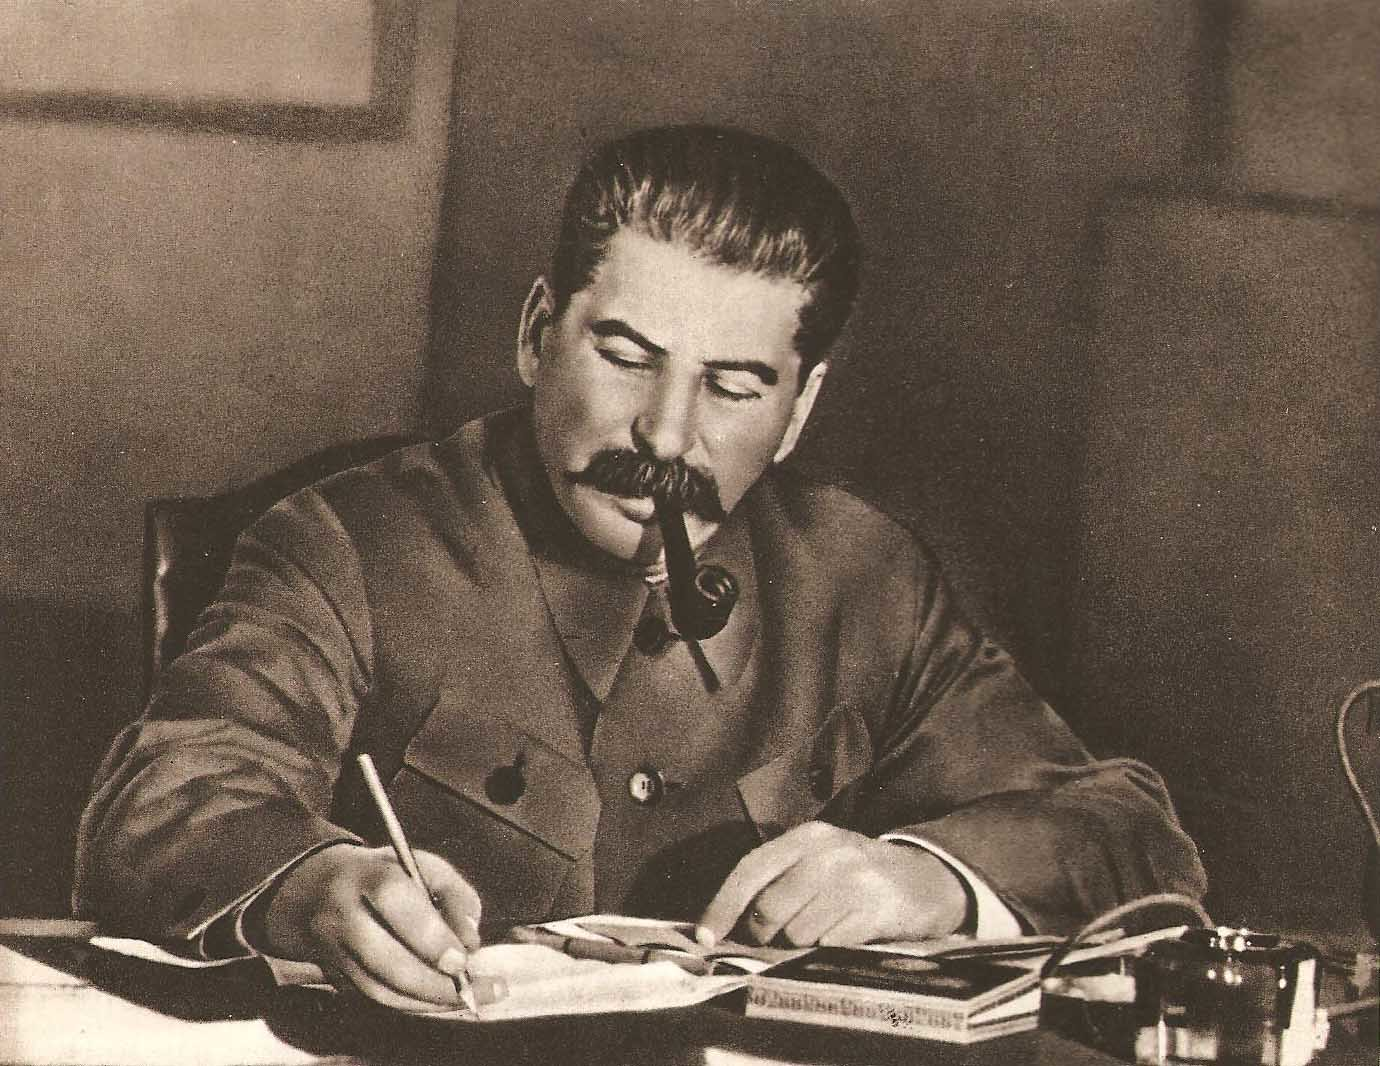 Joseph Stalin facts